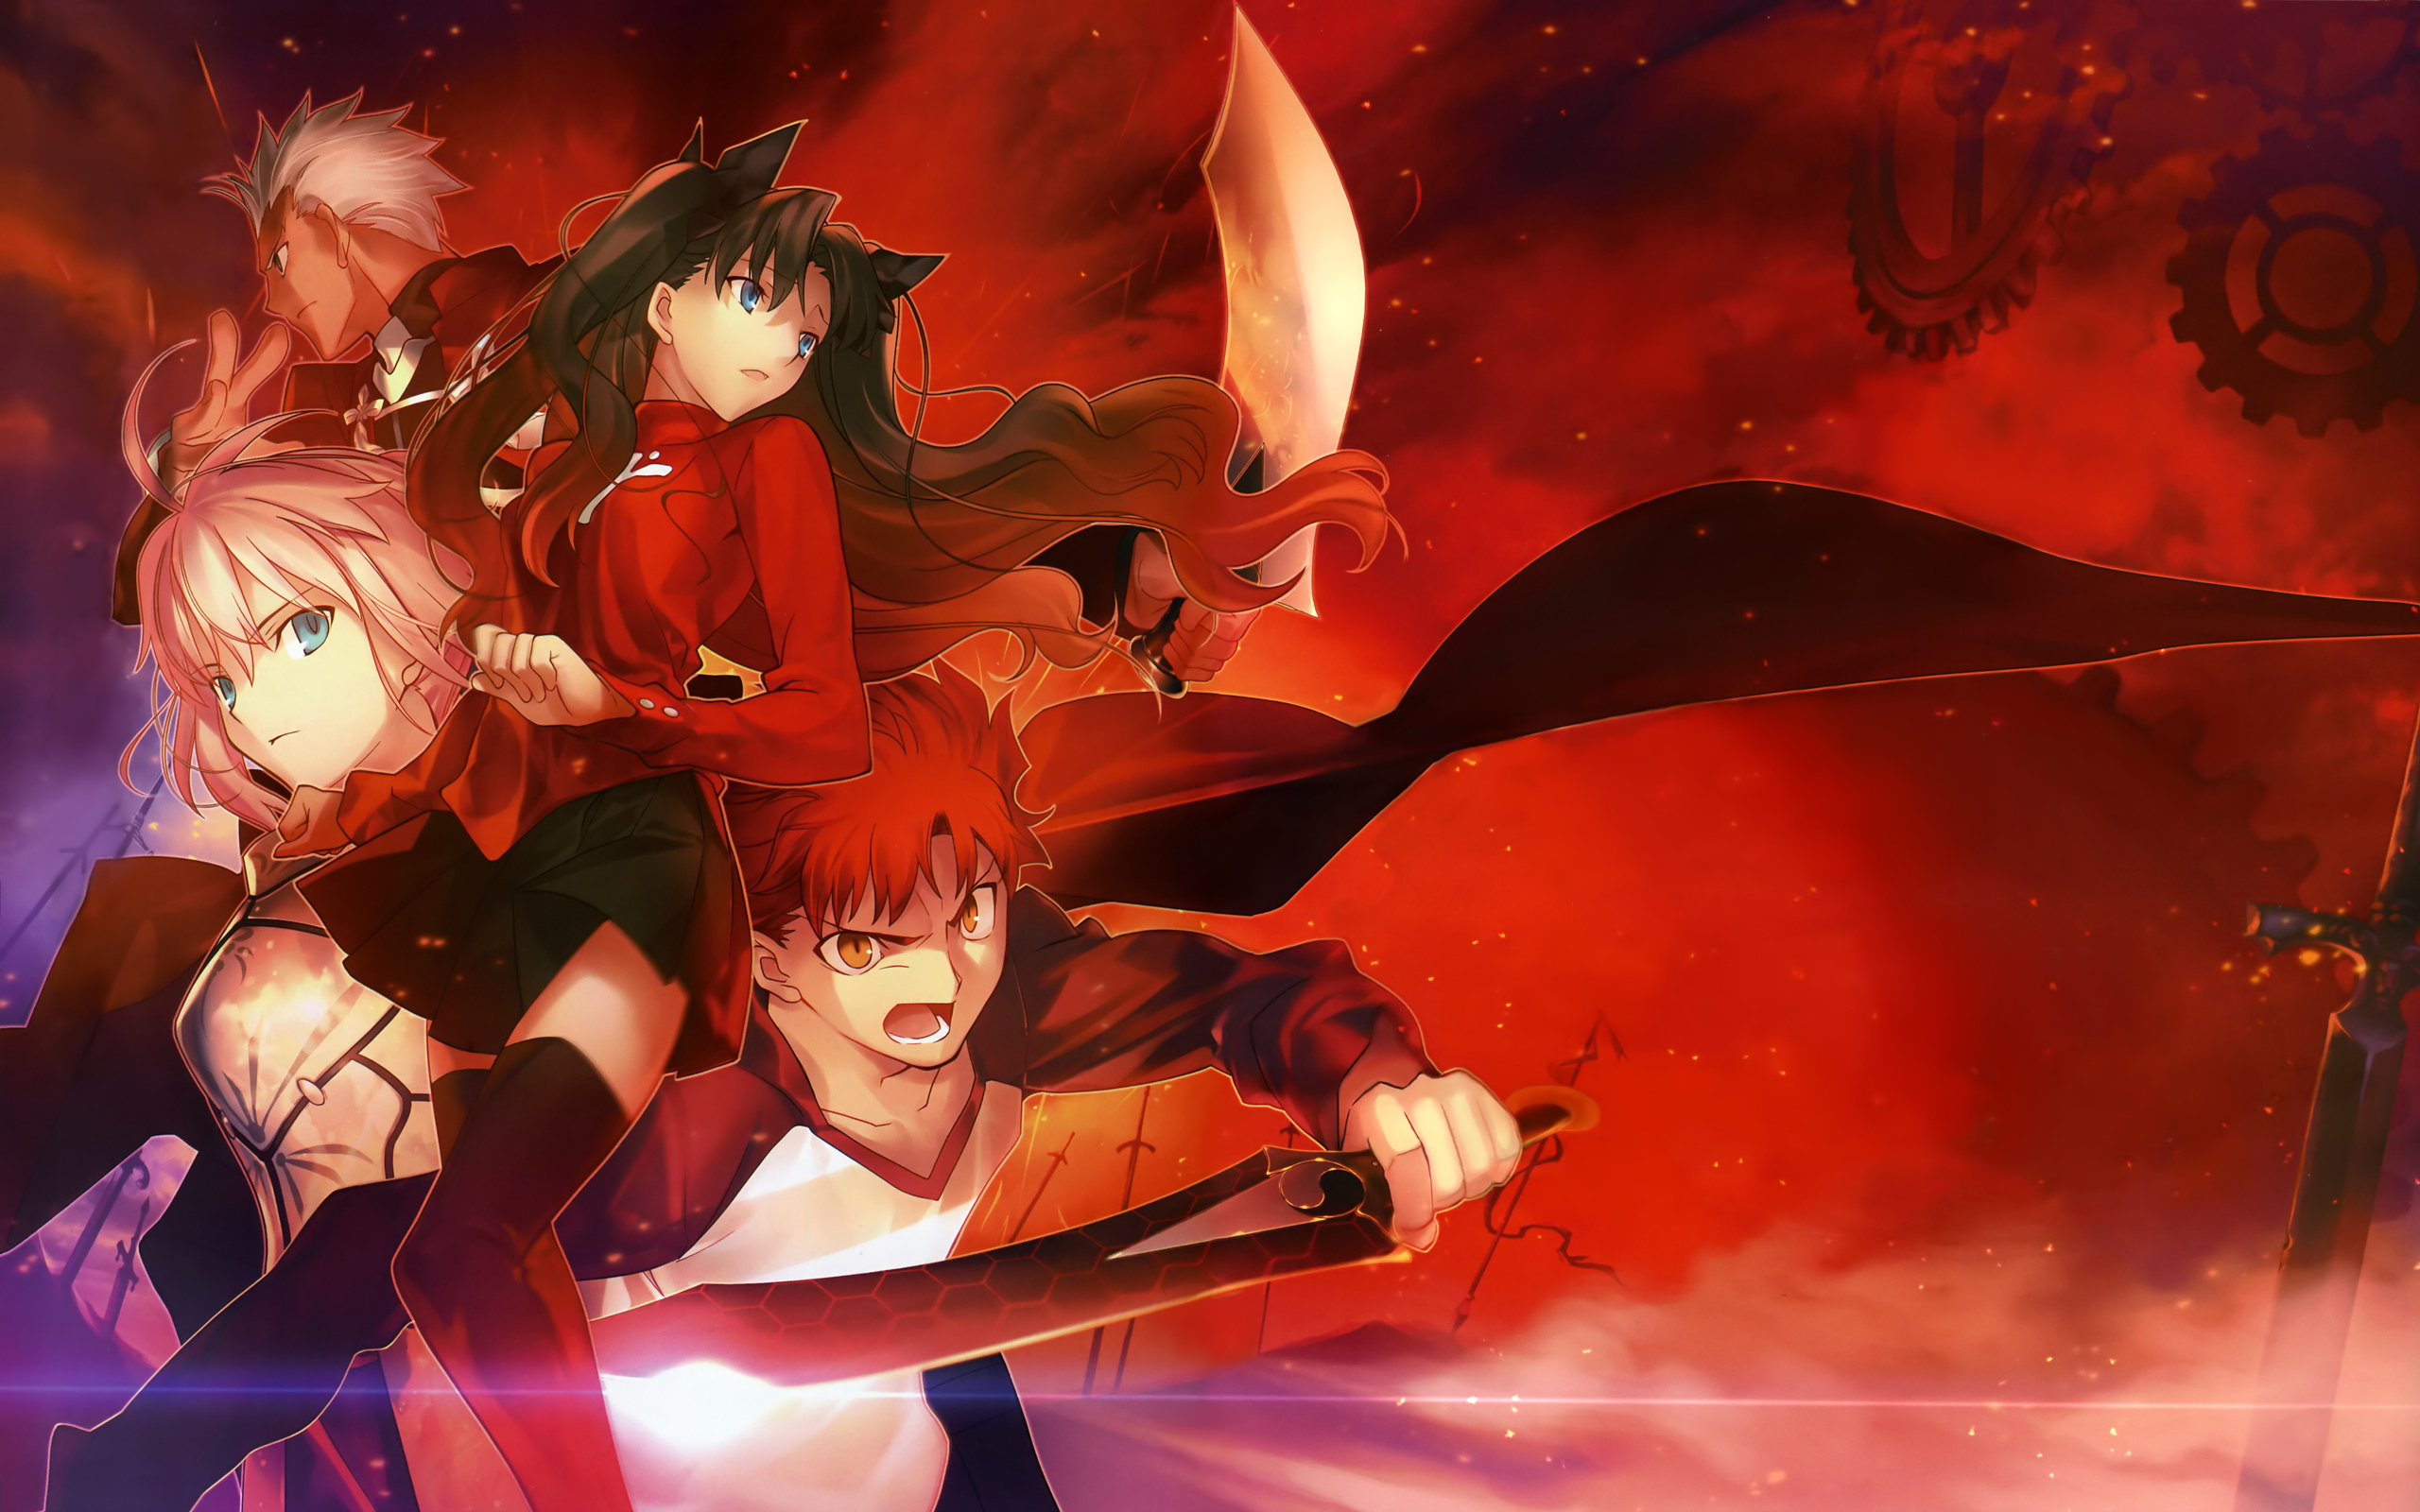 Fate Stay Night Anime Wallpapers - 2560x1600 - 1429590